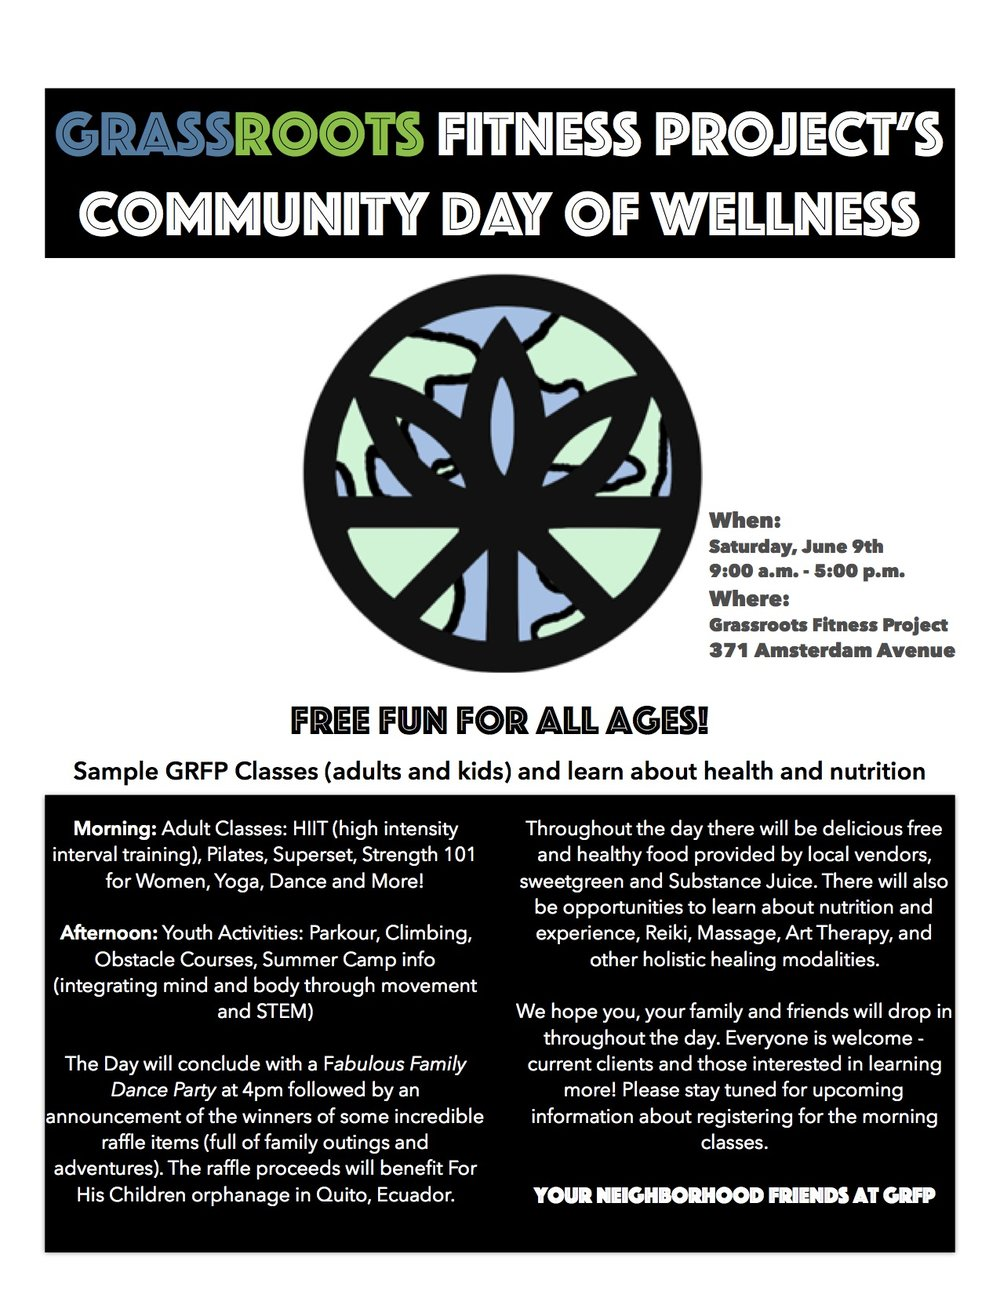 GRFP Community Wellness Day 2018-Flier.jpg